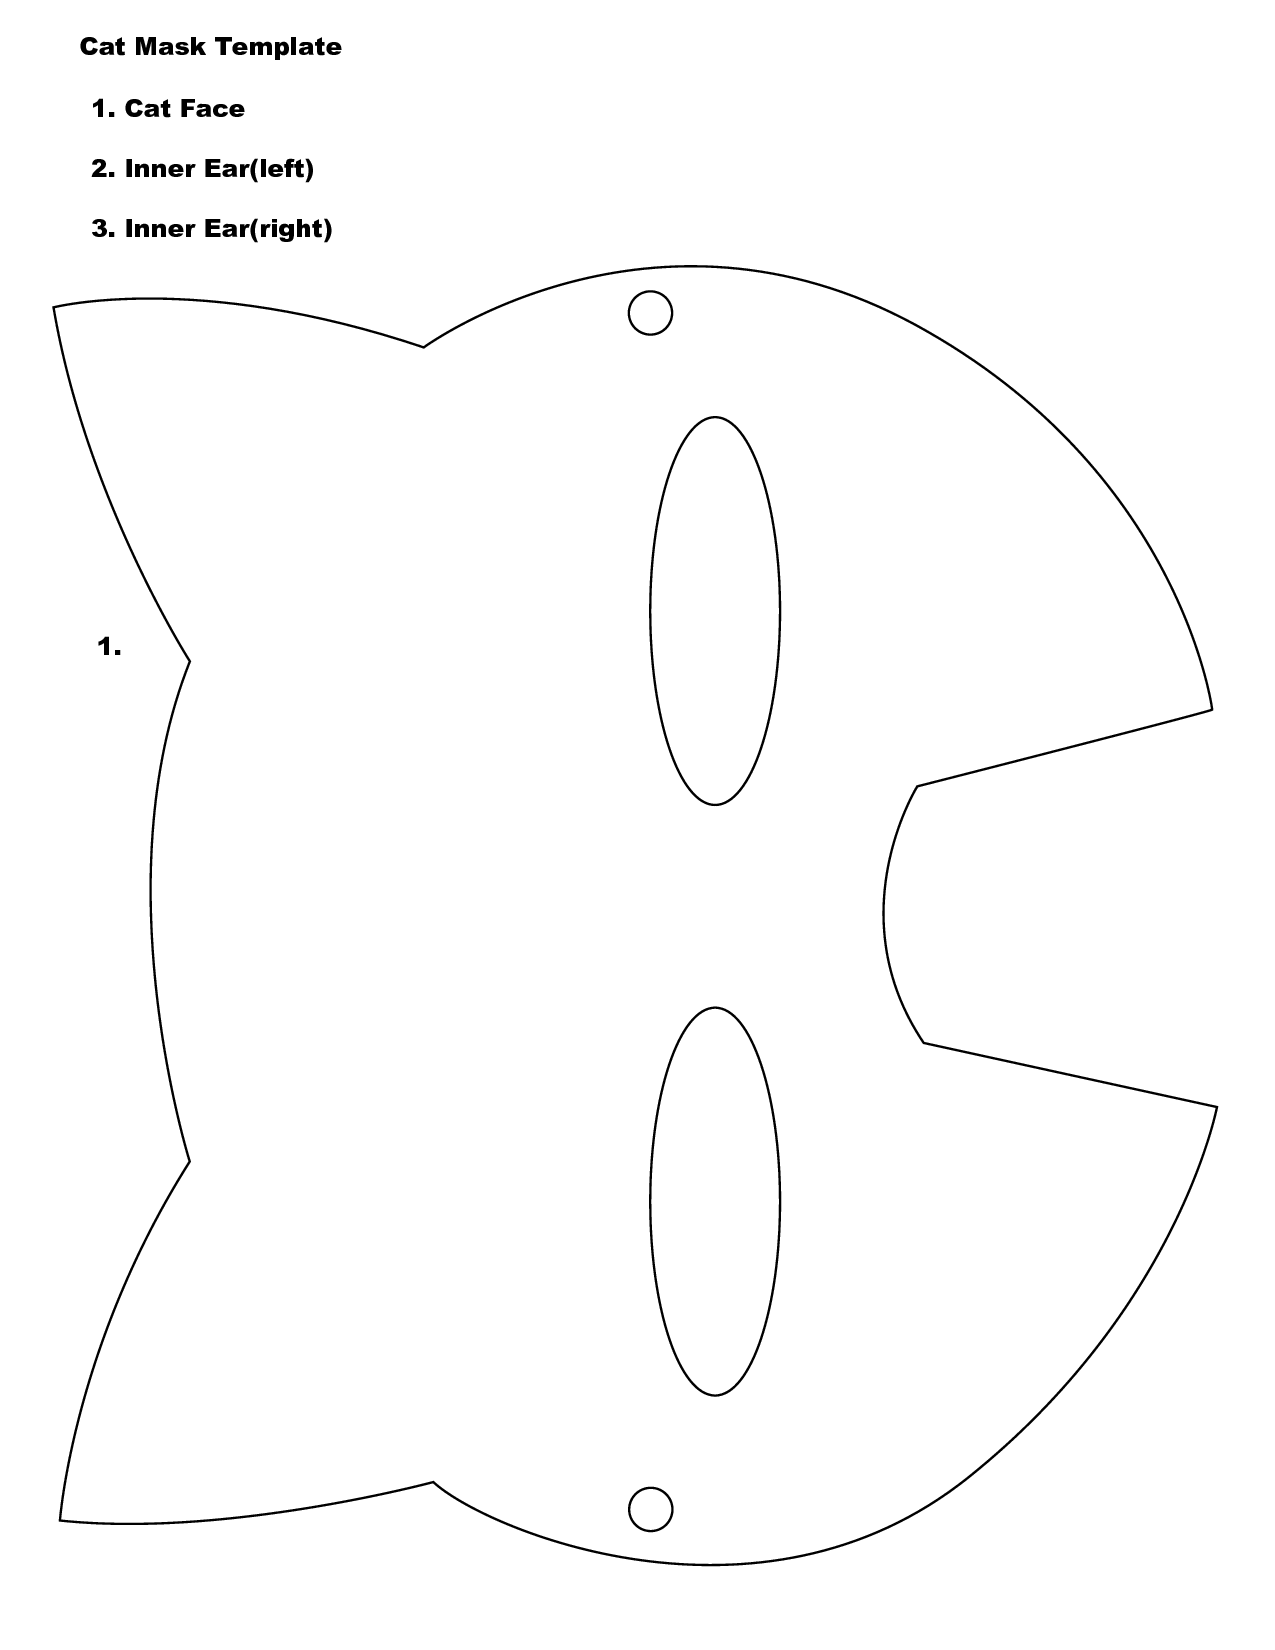 Cat Face Template Printable Images